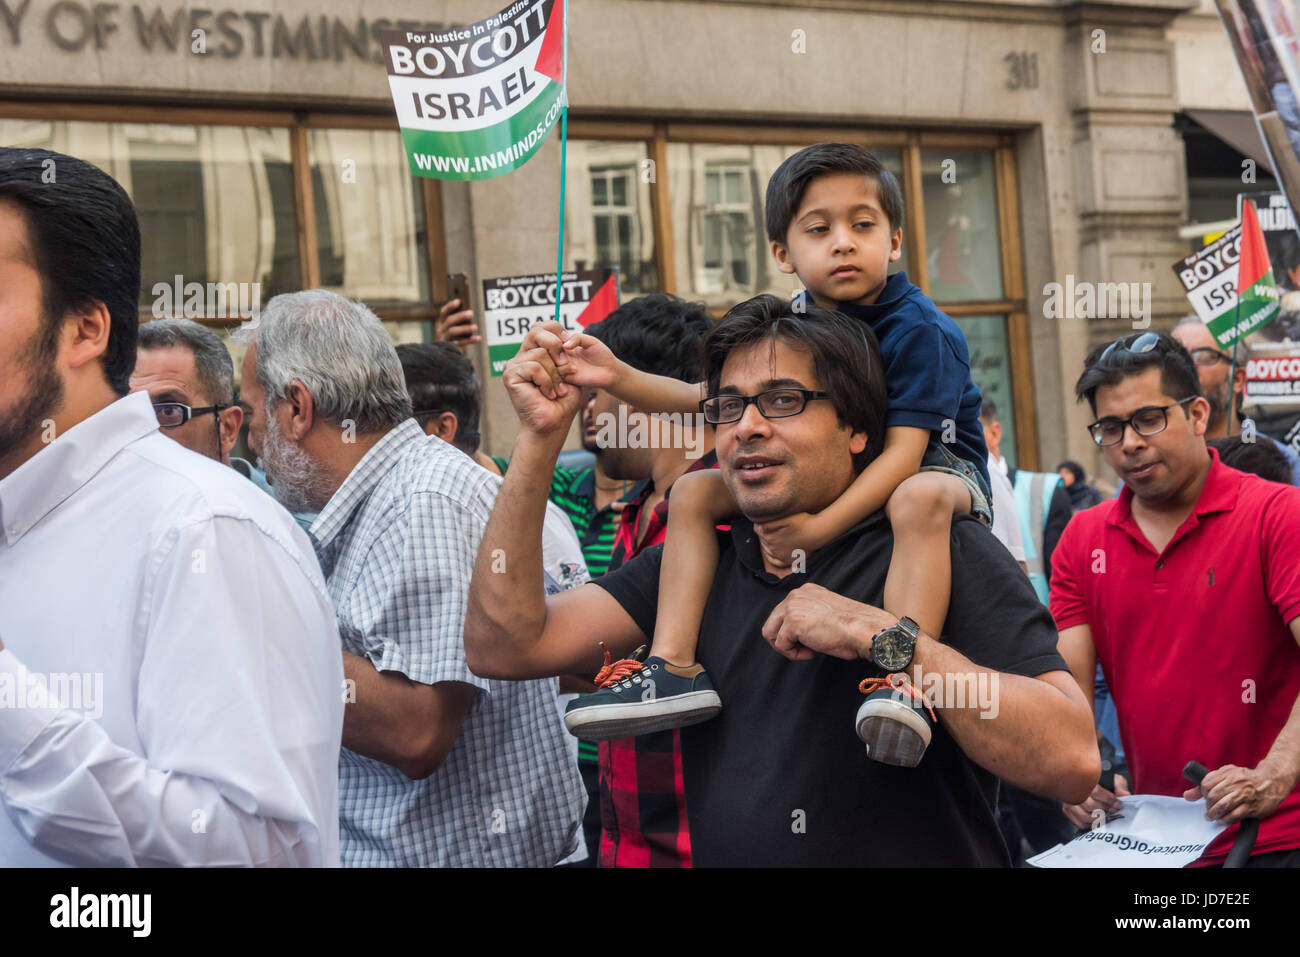 June 18, 2017 - London, UK - London, UK. 18th June 2017. The annual Al Quds (Jerusalem) Day march in London attended Stock Photo